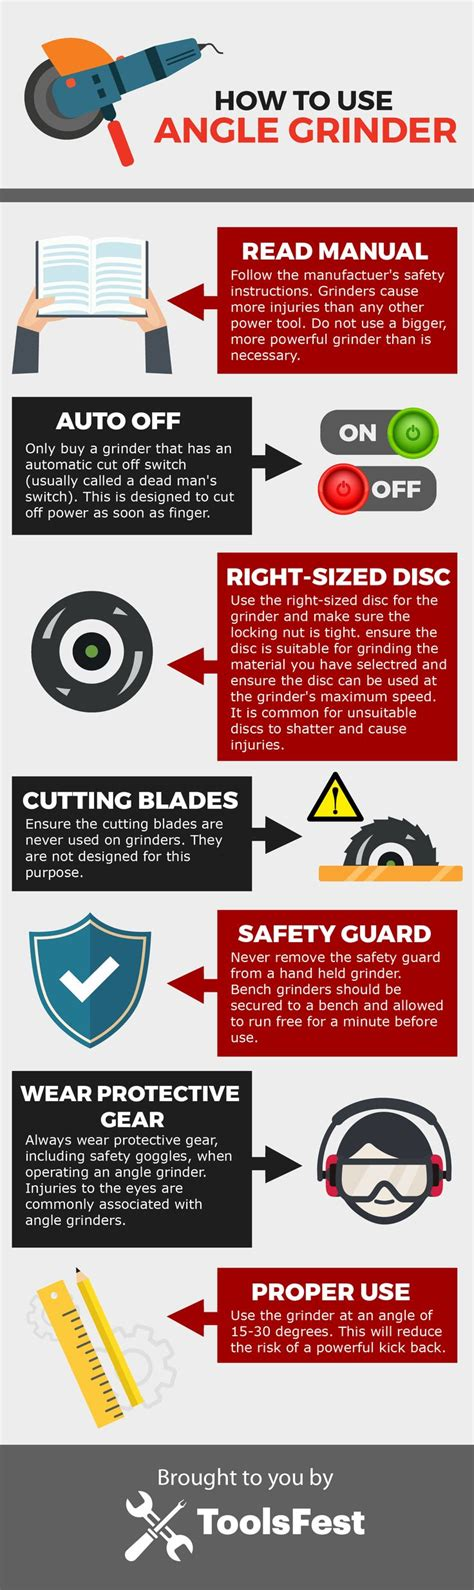 bench grinder safety poster 17 best ideas about angle grinder on pinterest tools